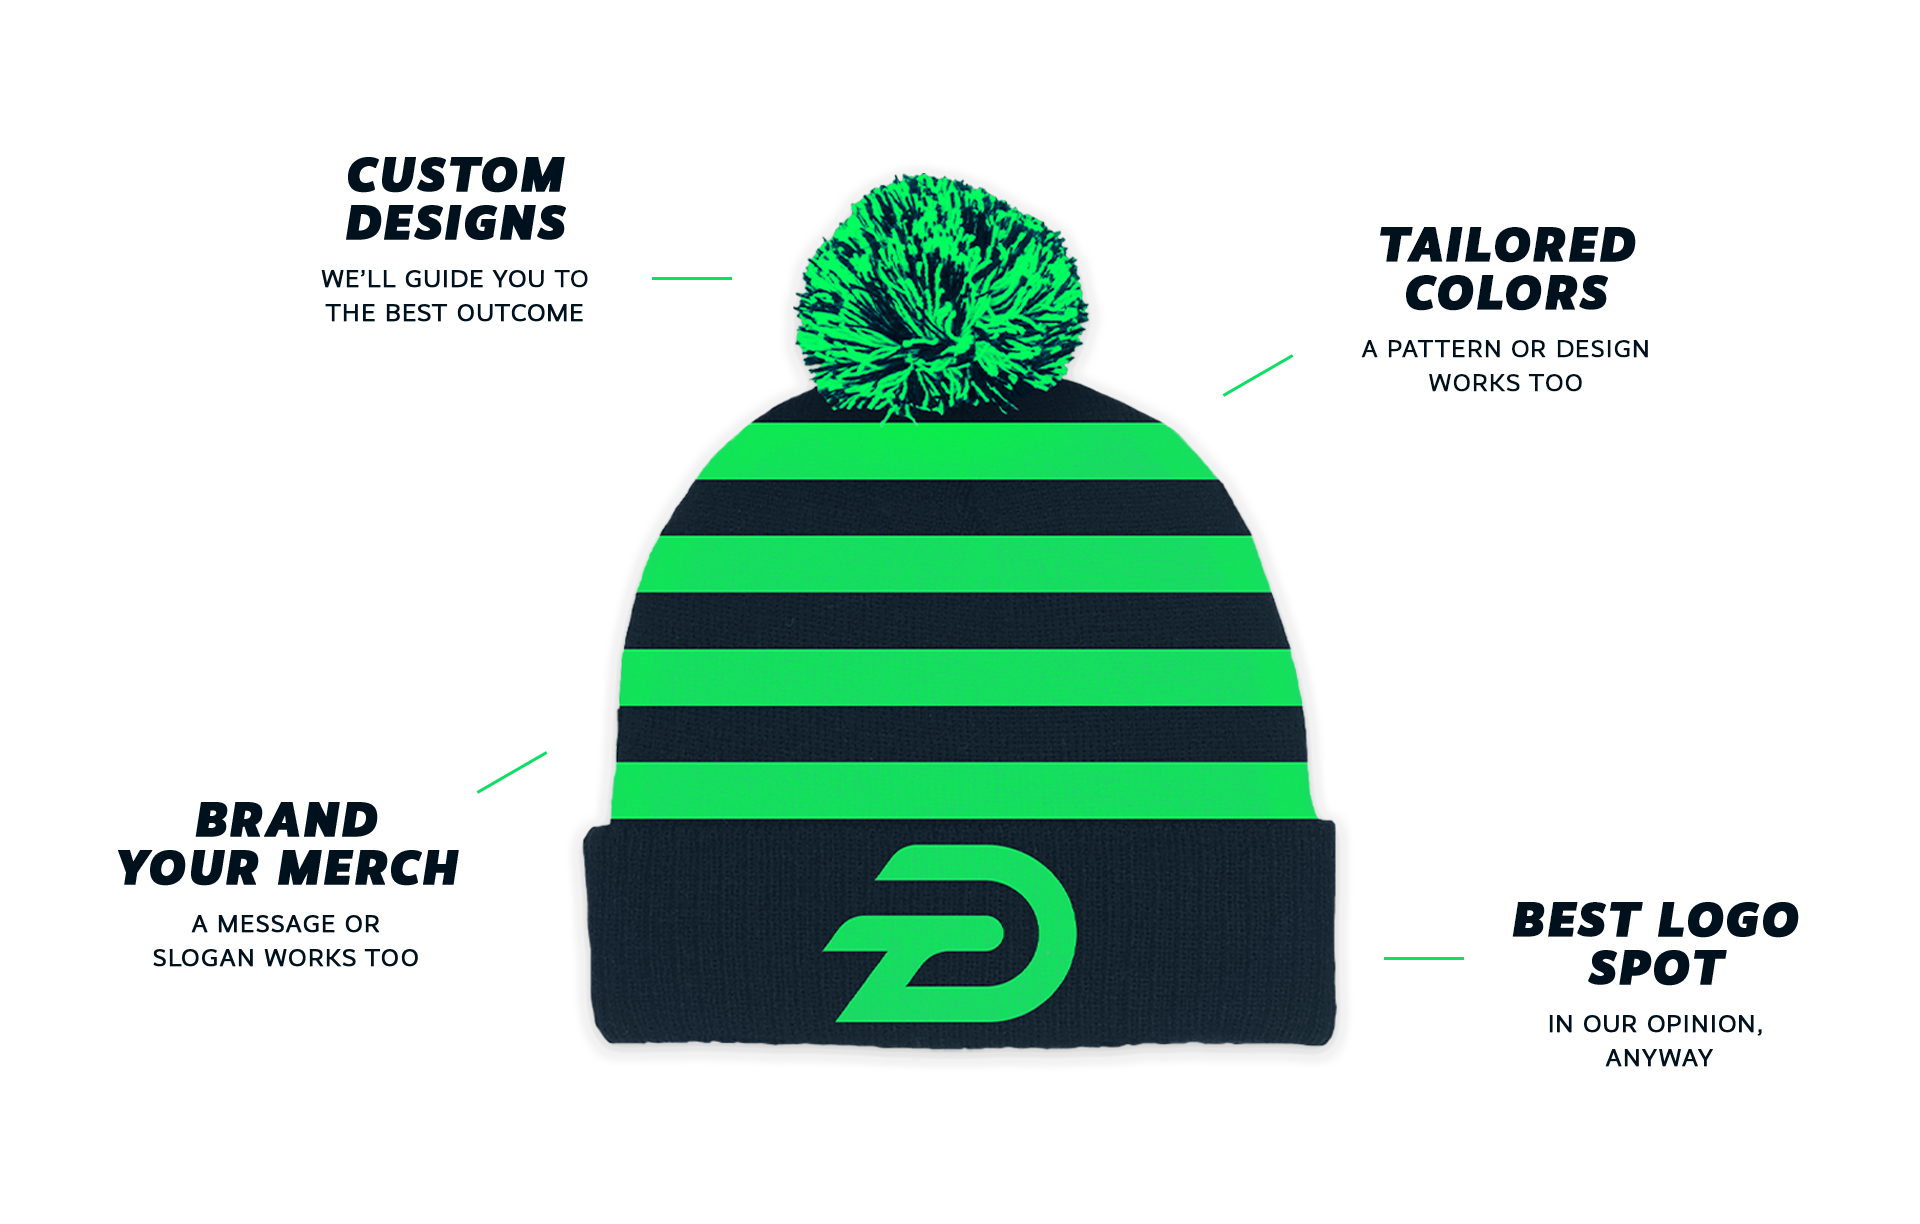 A mock up of a sample custom beanie design branded with logo, colors, and messaging